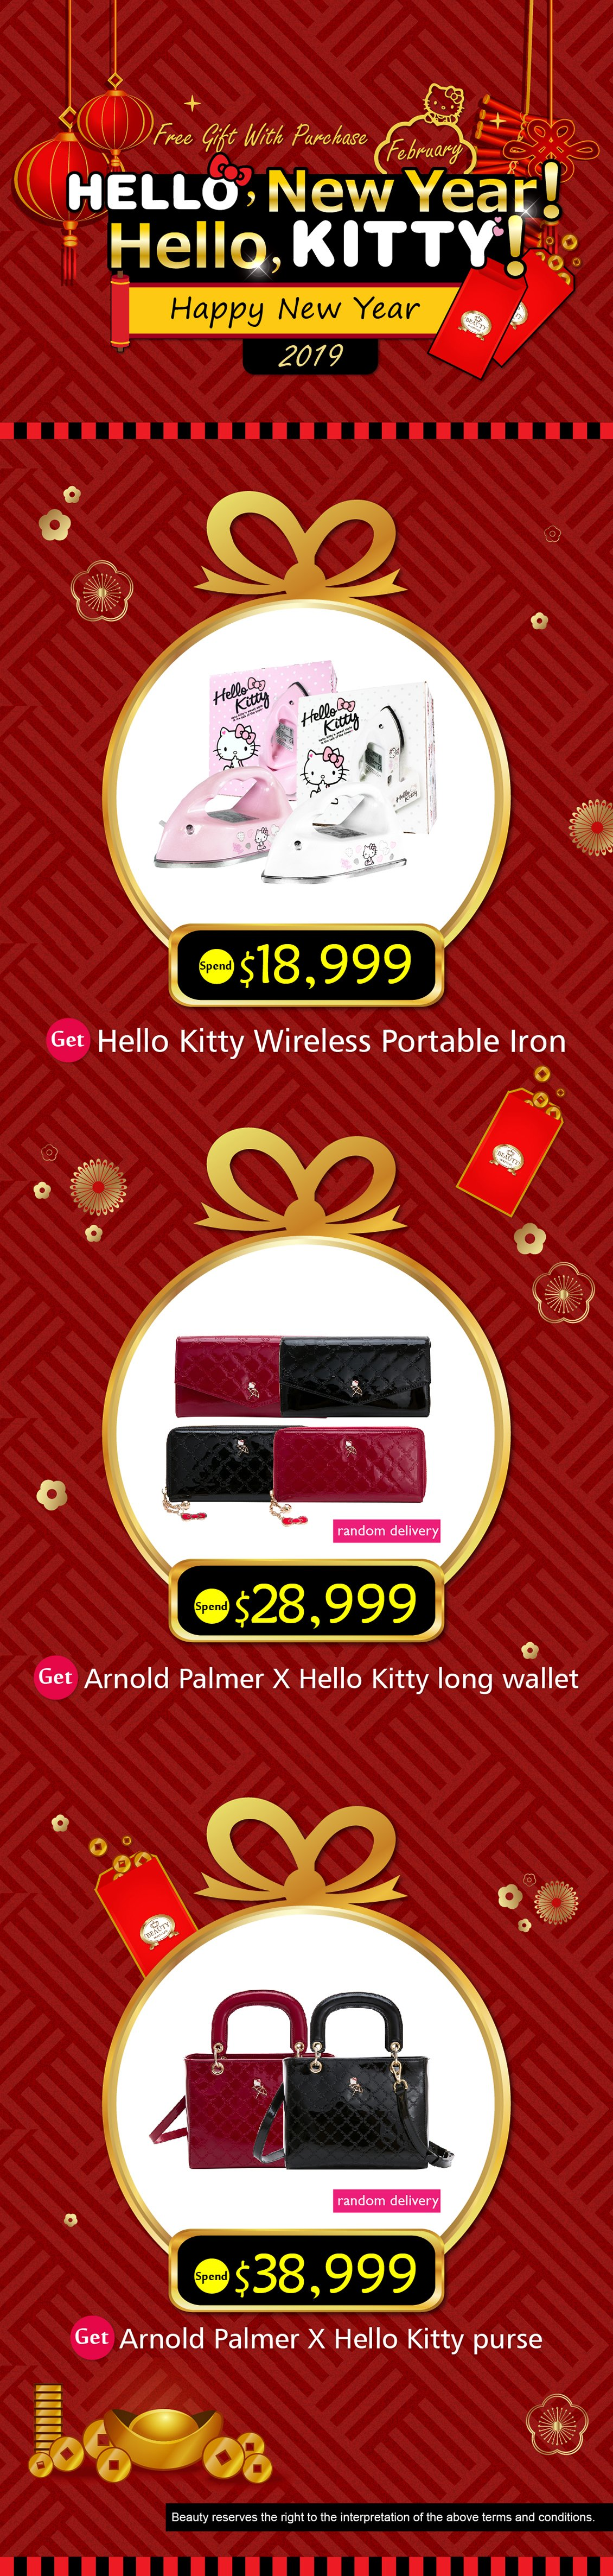 HELLO, New Year! Hello, Kitty!-EDM-01.jpg